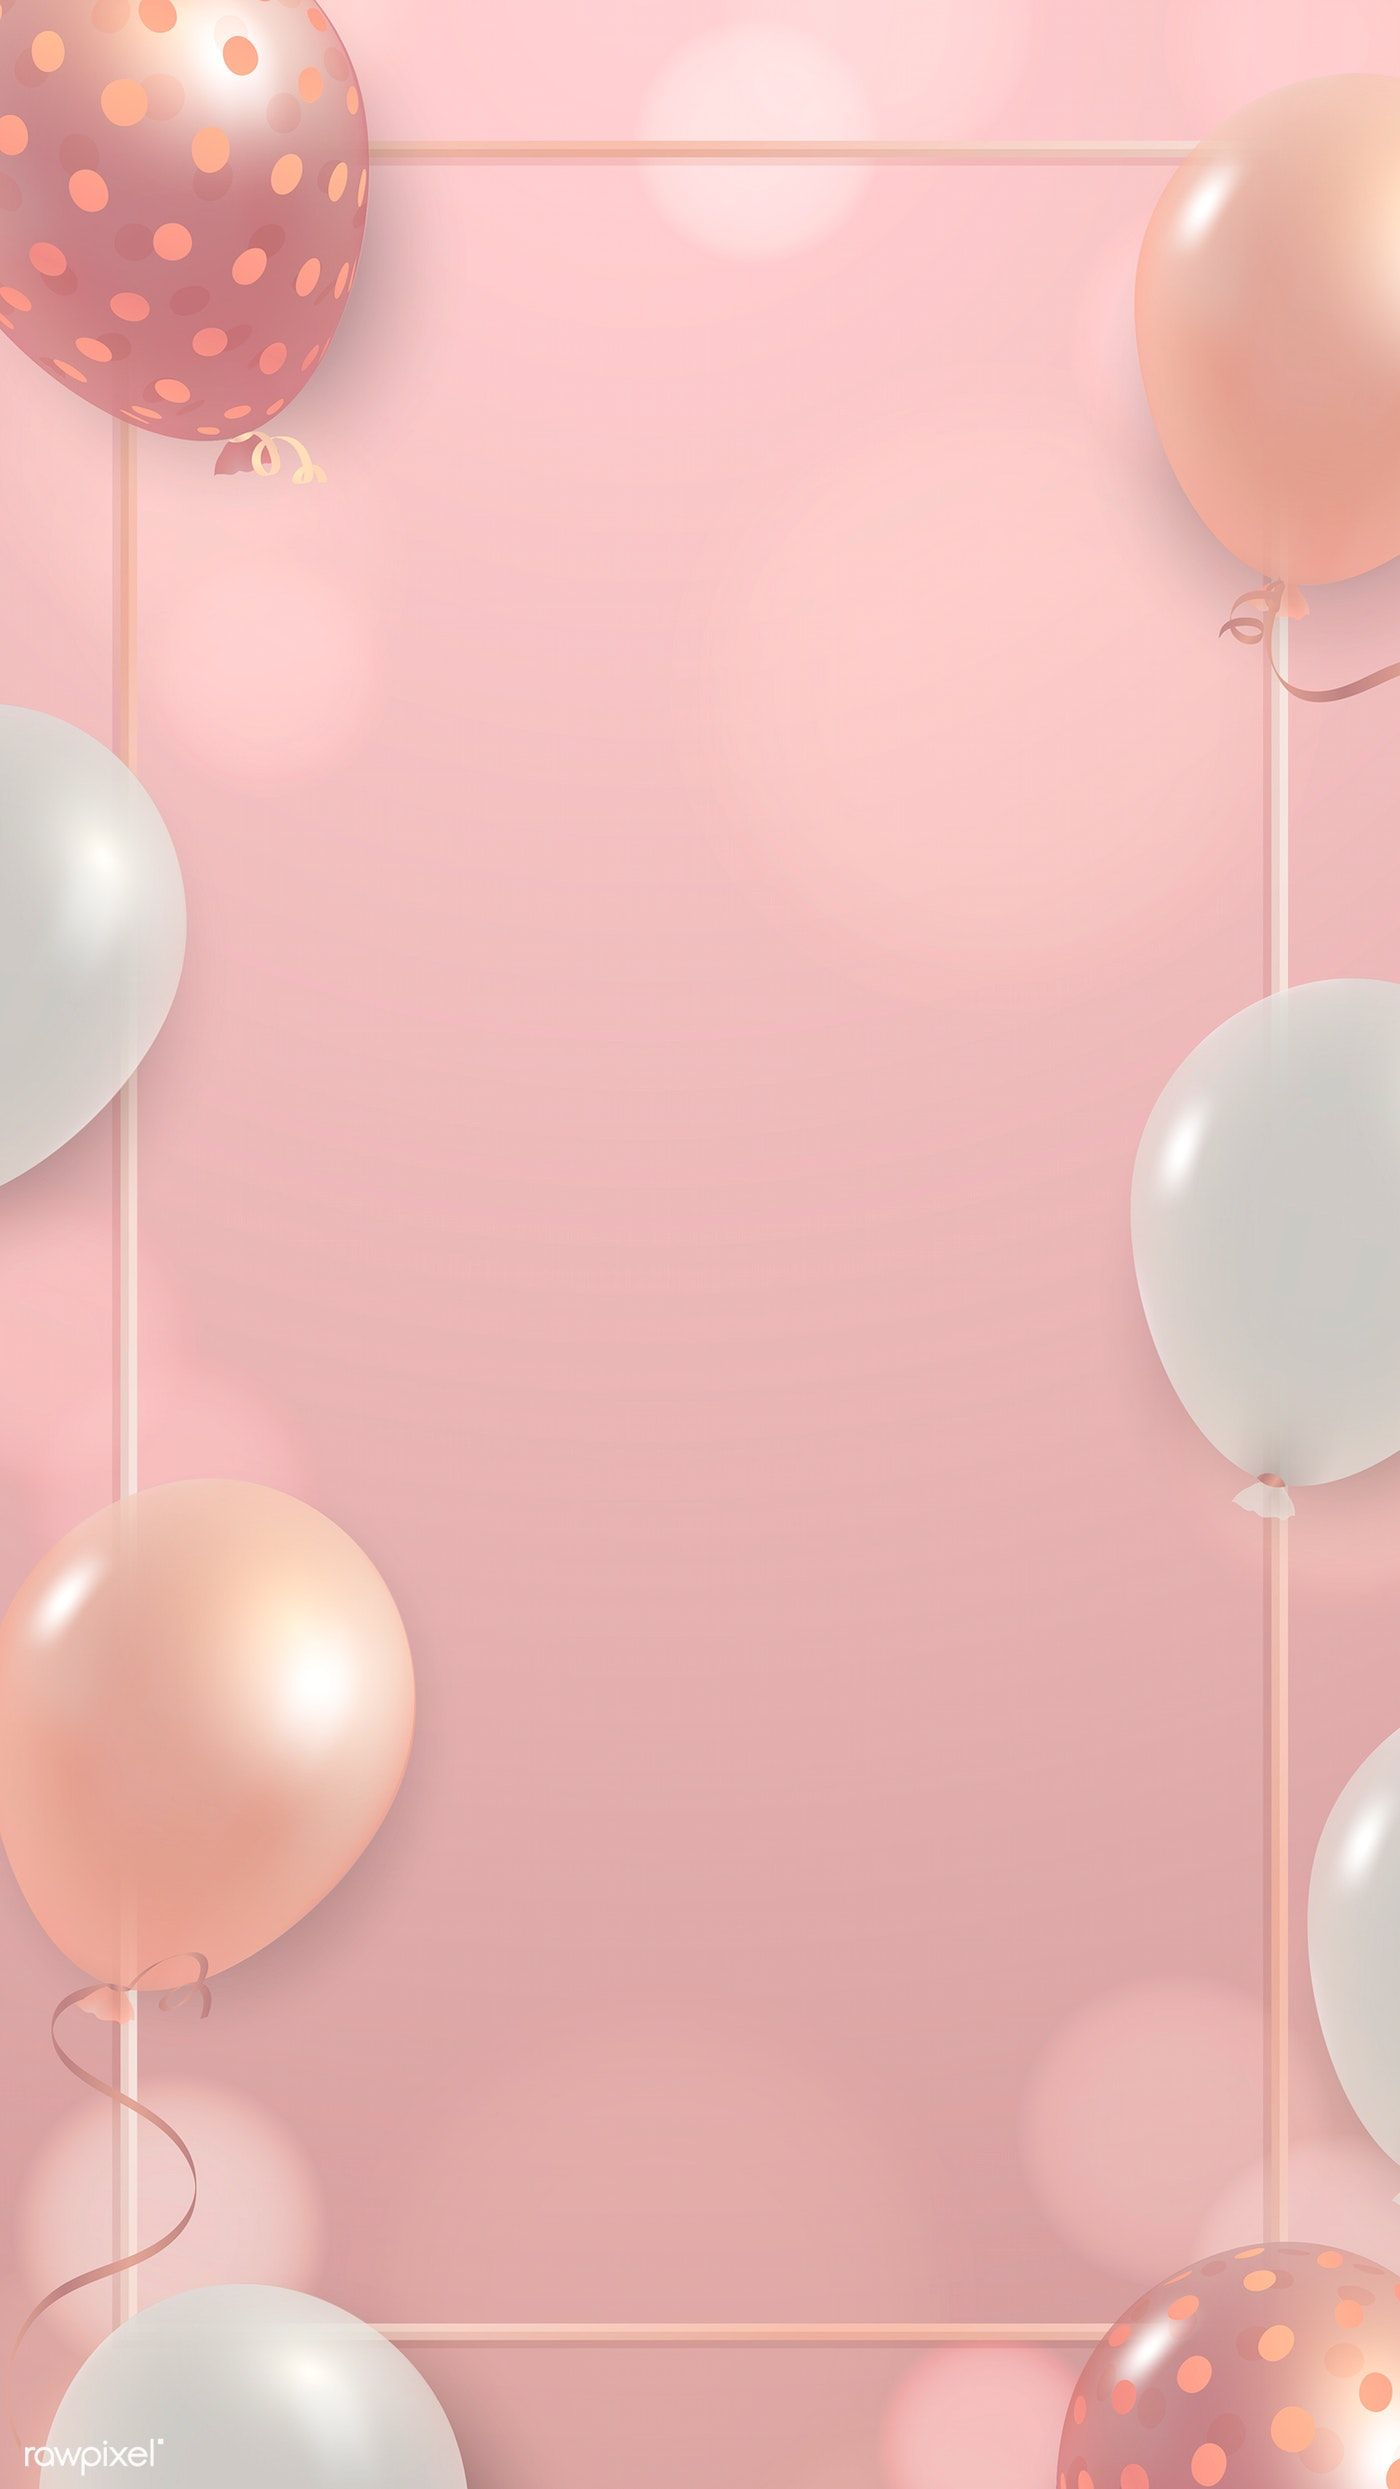 These Are My Outsider Preferences I Ve Come Up With Hope You Enjoy T Random Random Amr Birthday Wallpaper Birthday Background Wallpaper Birthday Background